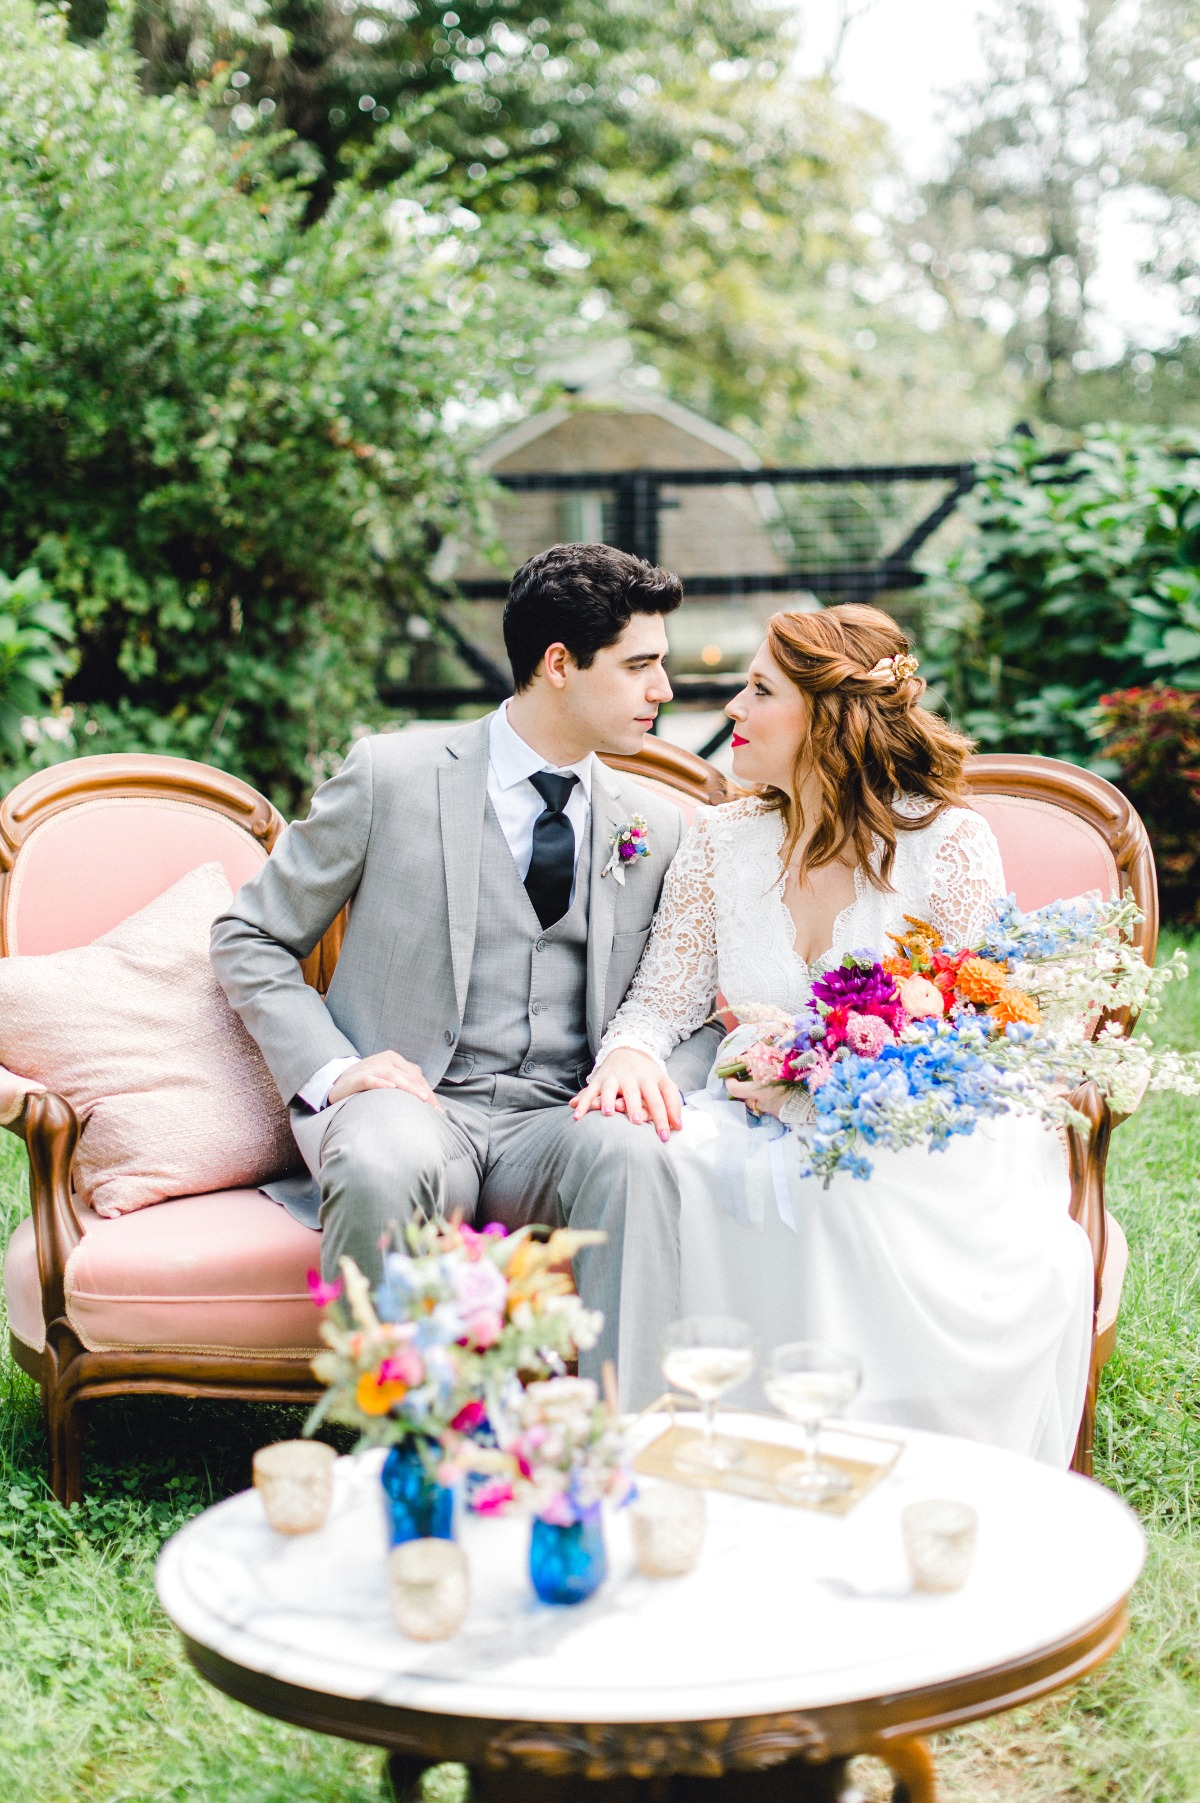 Bright and cheerful outdoor elopement ideas